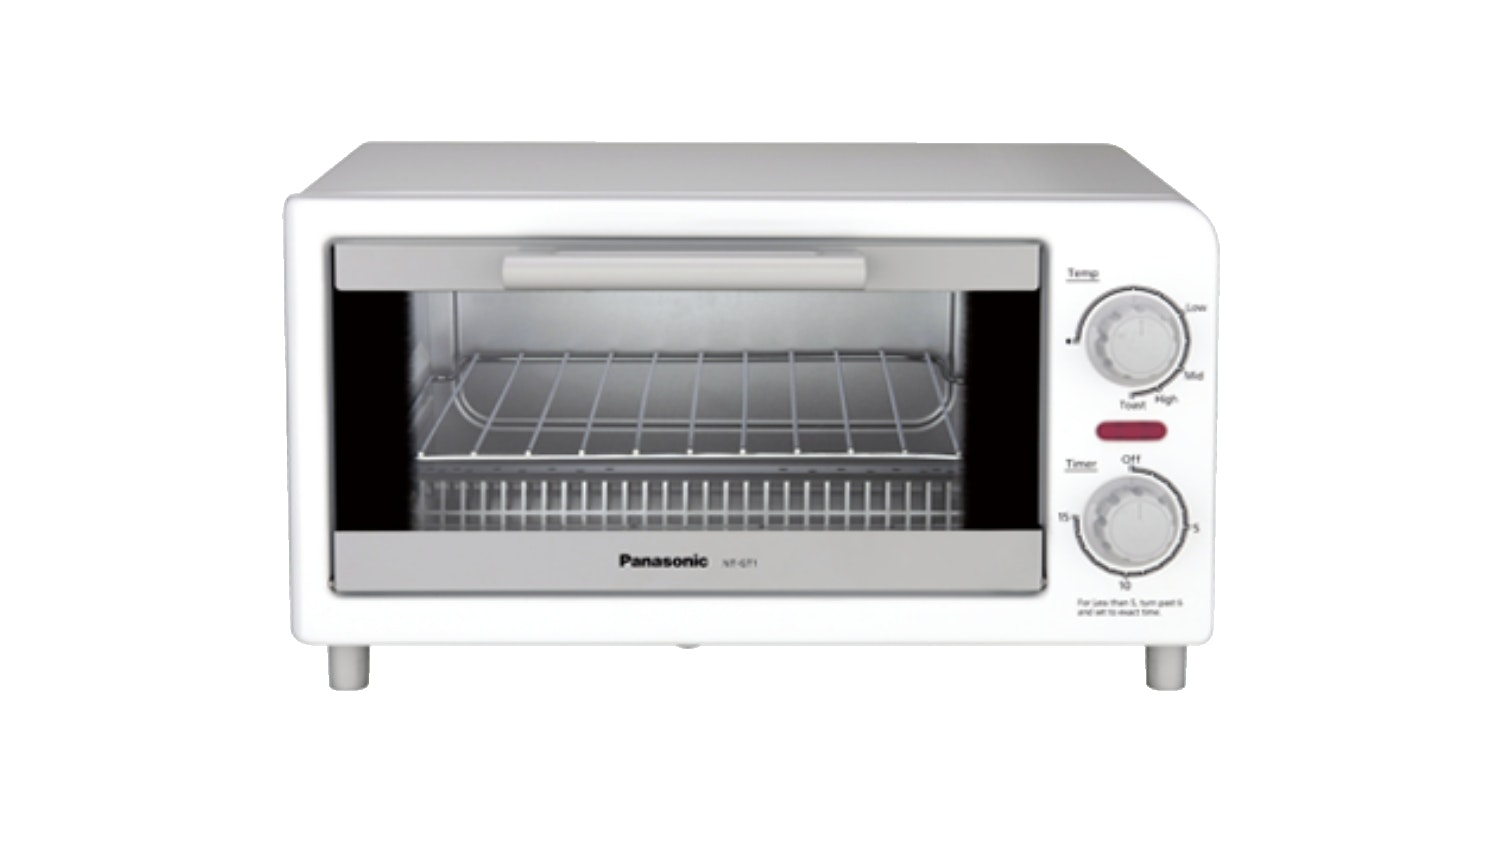 Panasonic Nt Gt1 9l Oven Toaster Harvey Norman Singapore